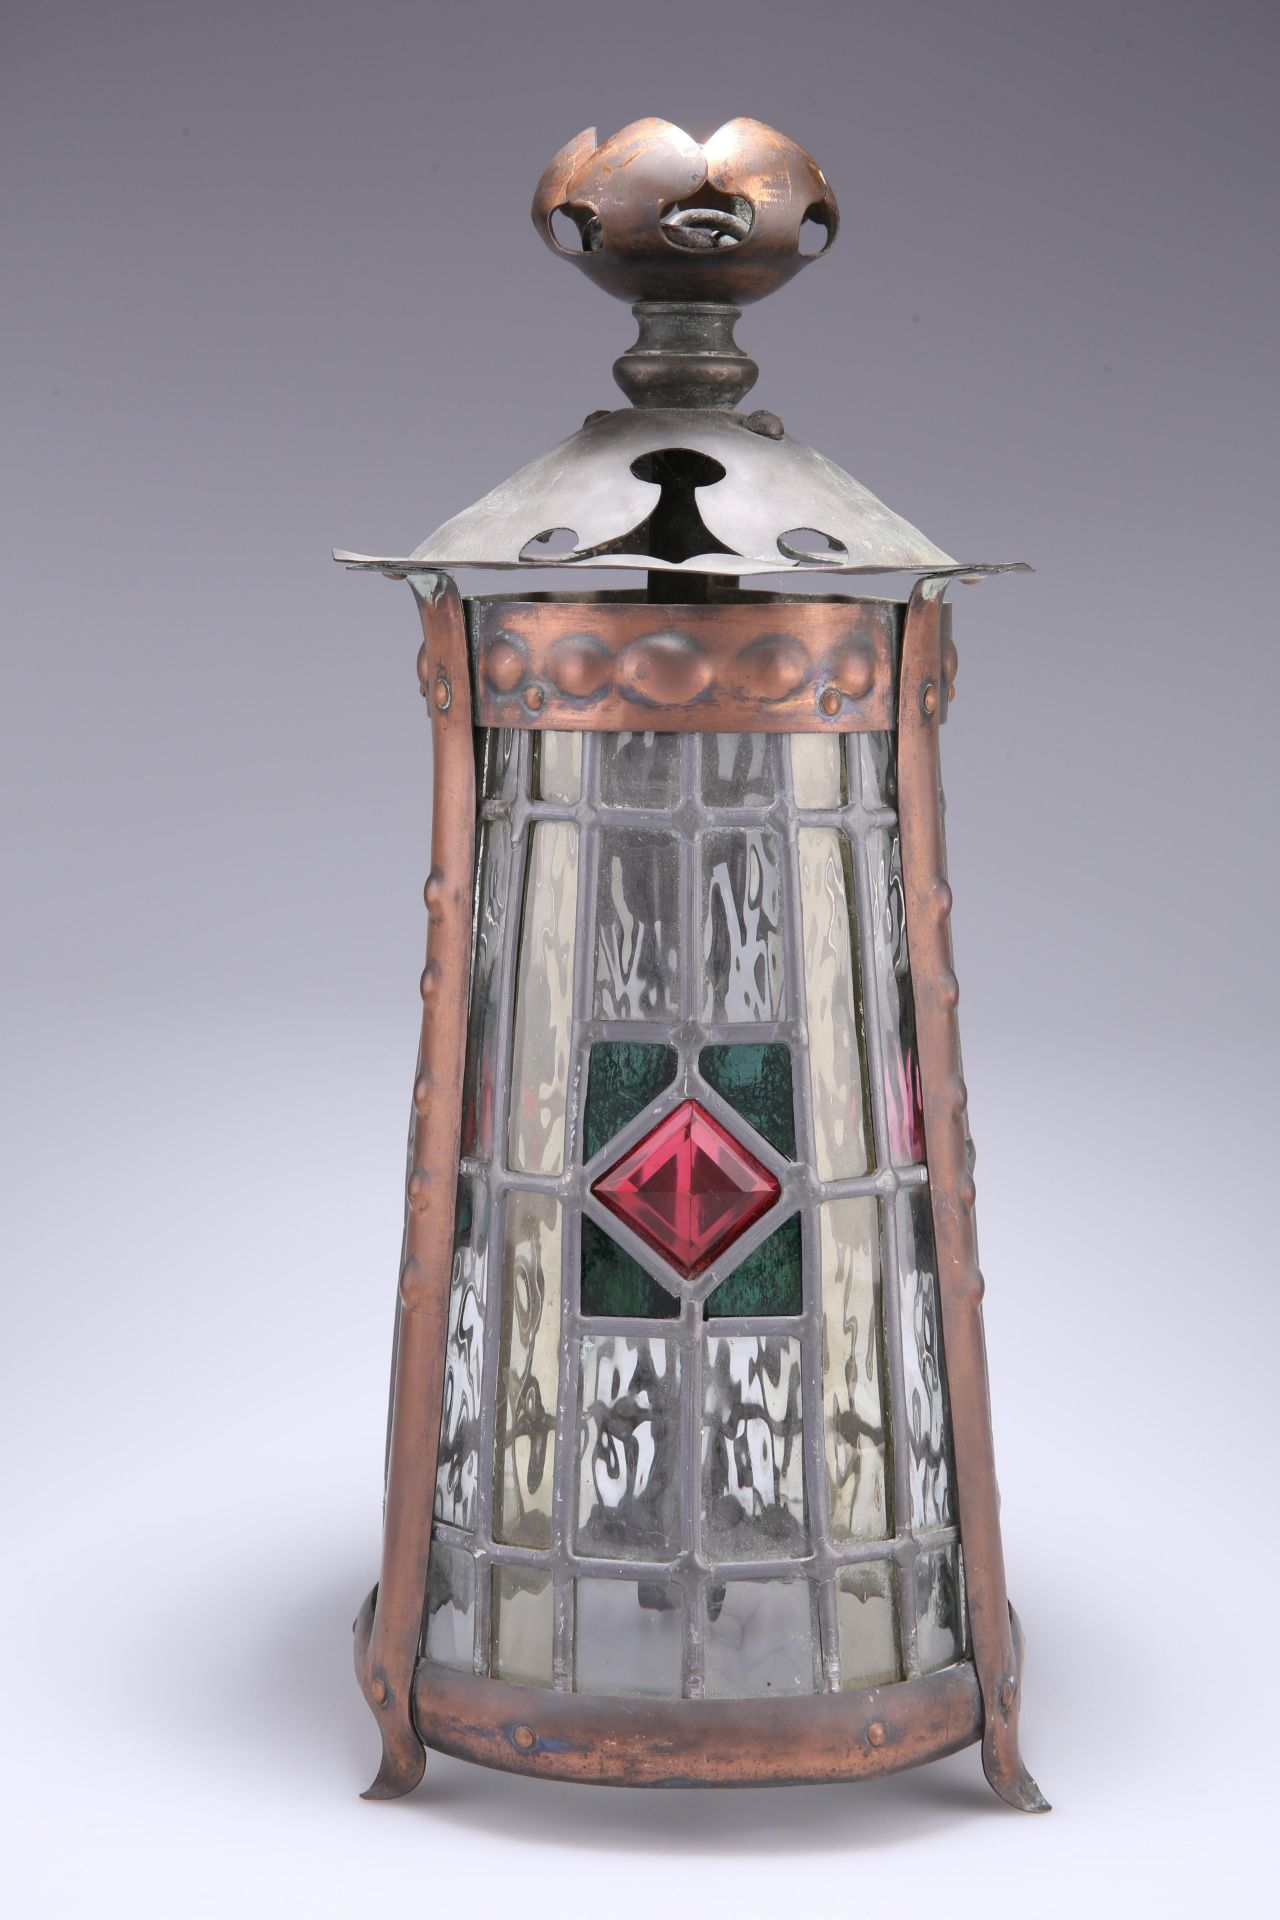 AN ARTS AND CRAFTS COPPER LANTERN, tapering cylindrical form, the three lead-glazed panels centred